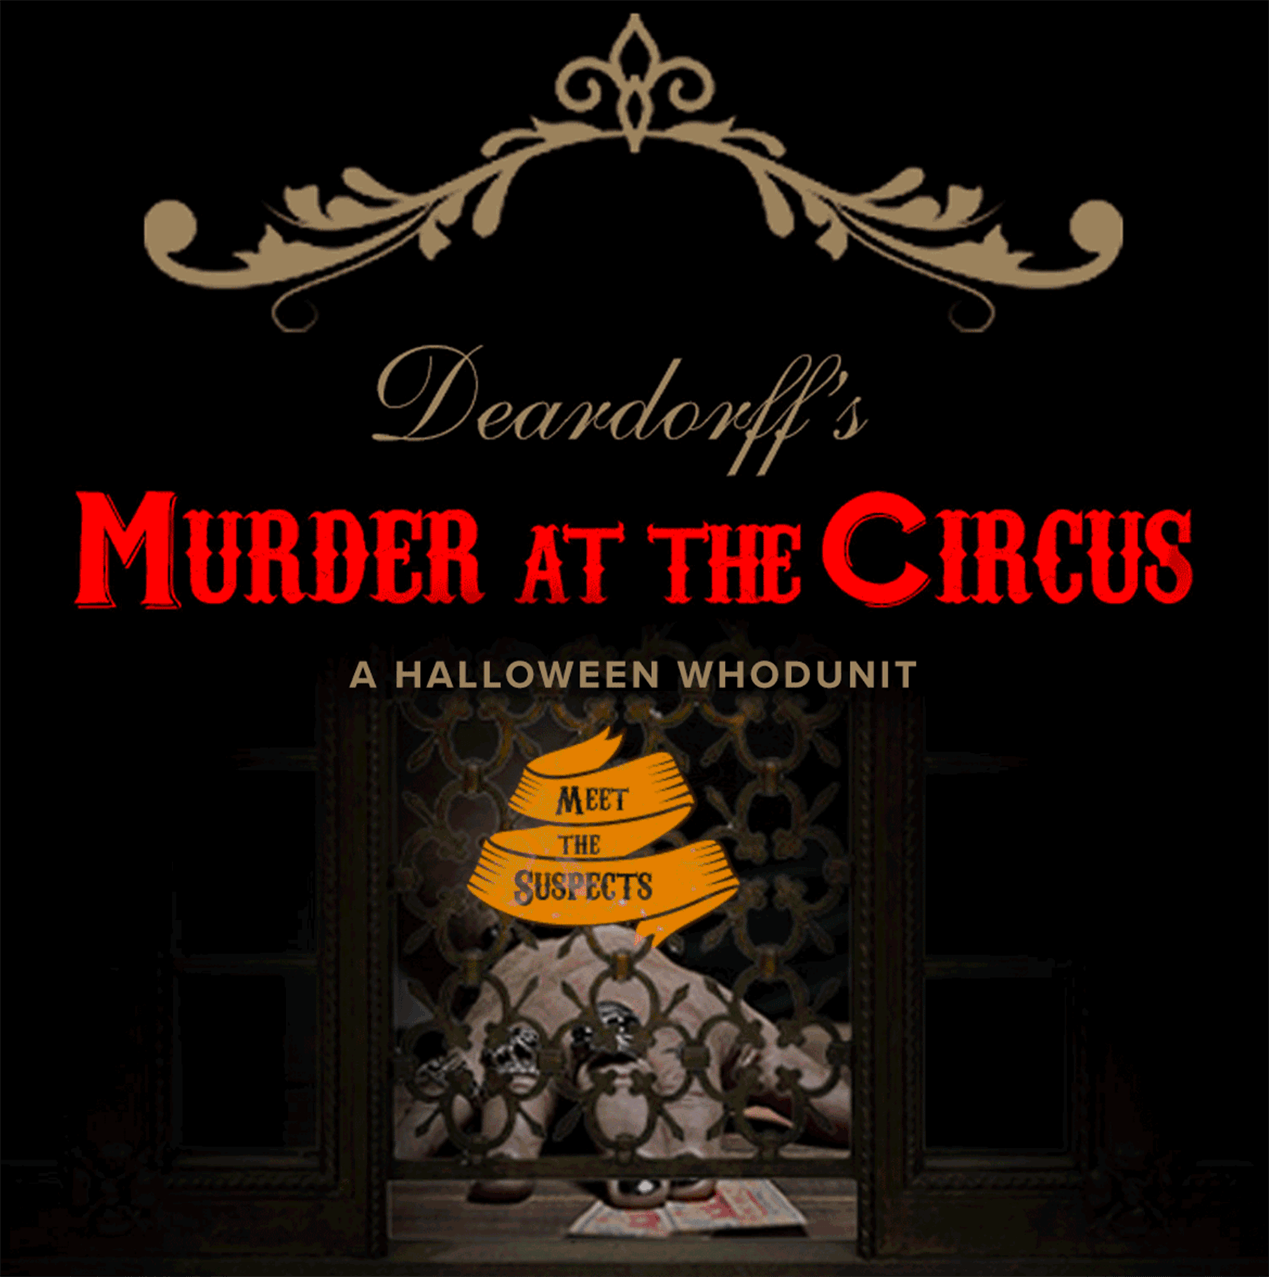 Murder at the Circus